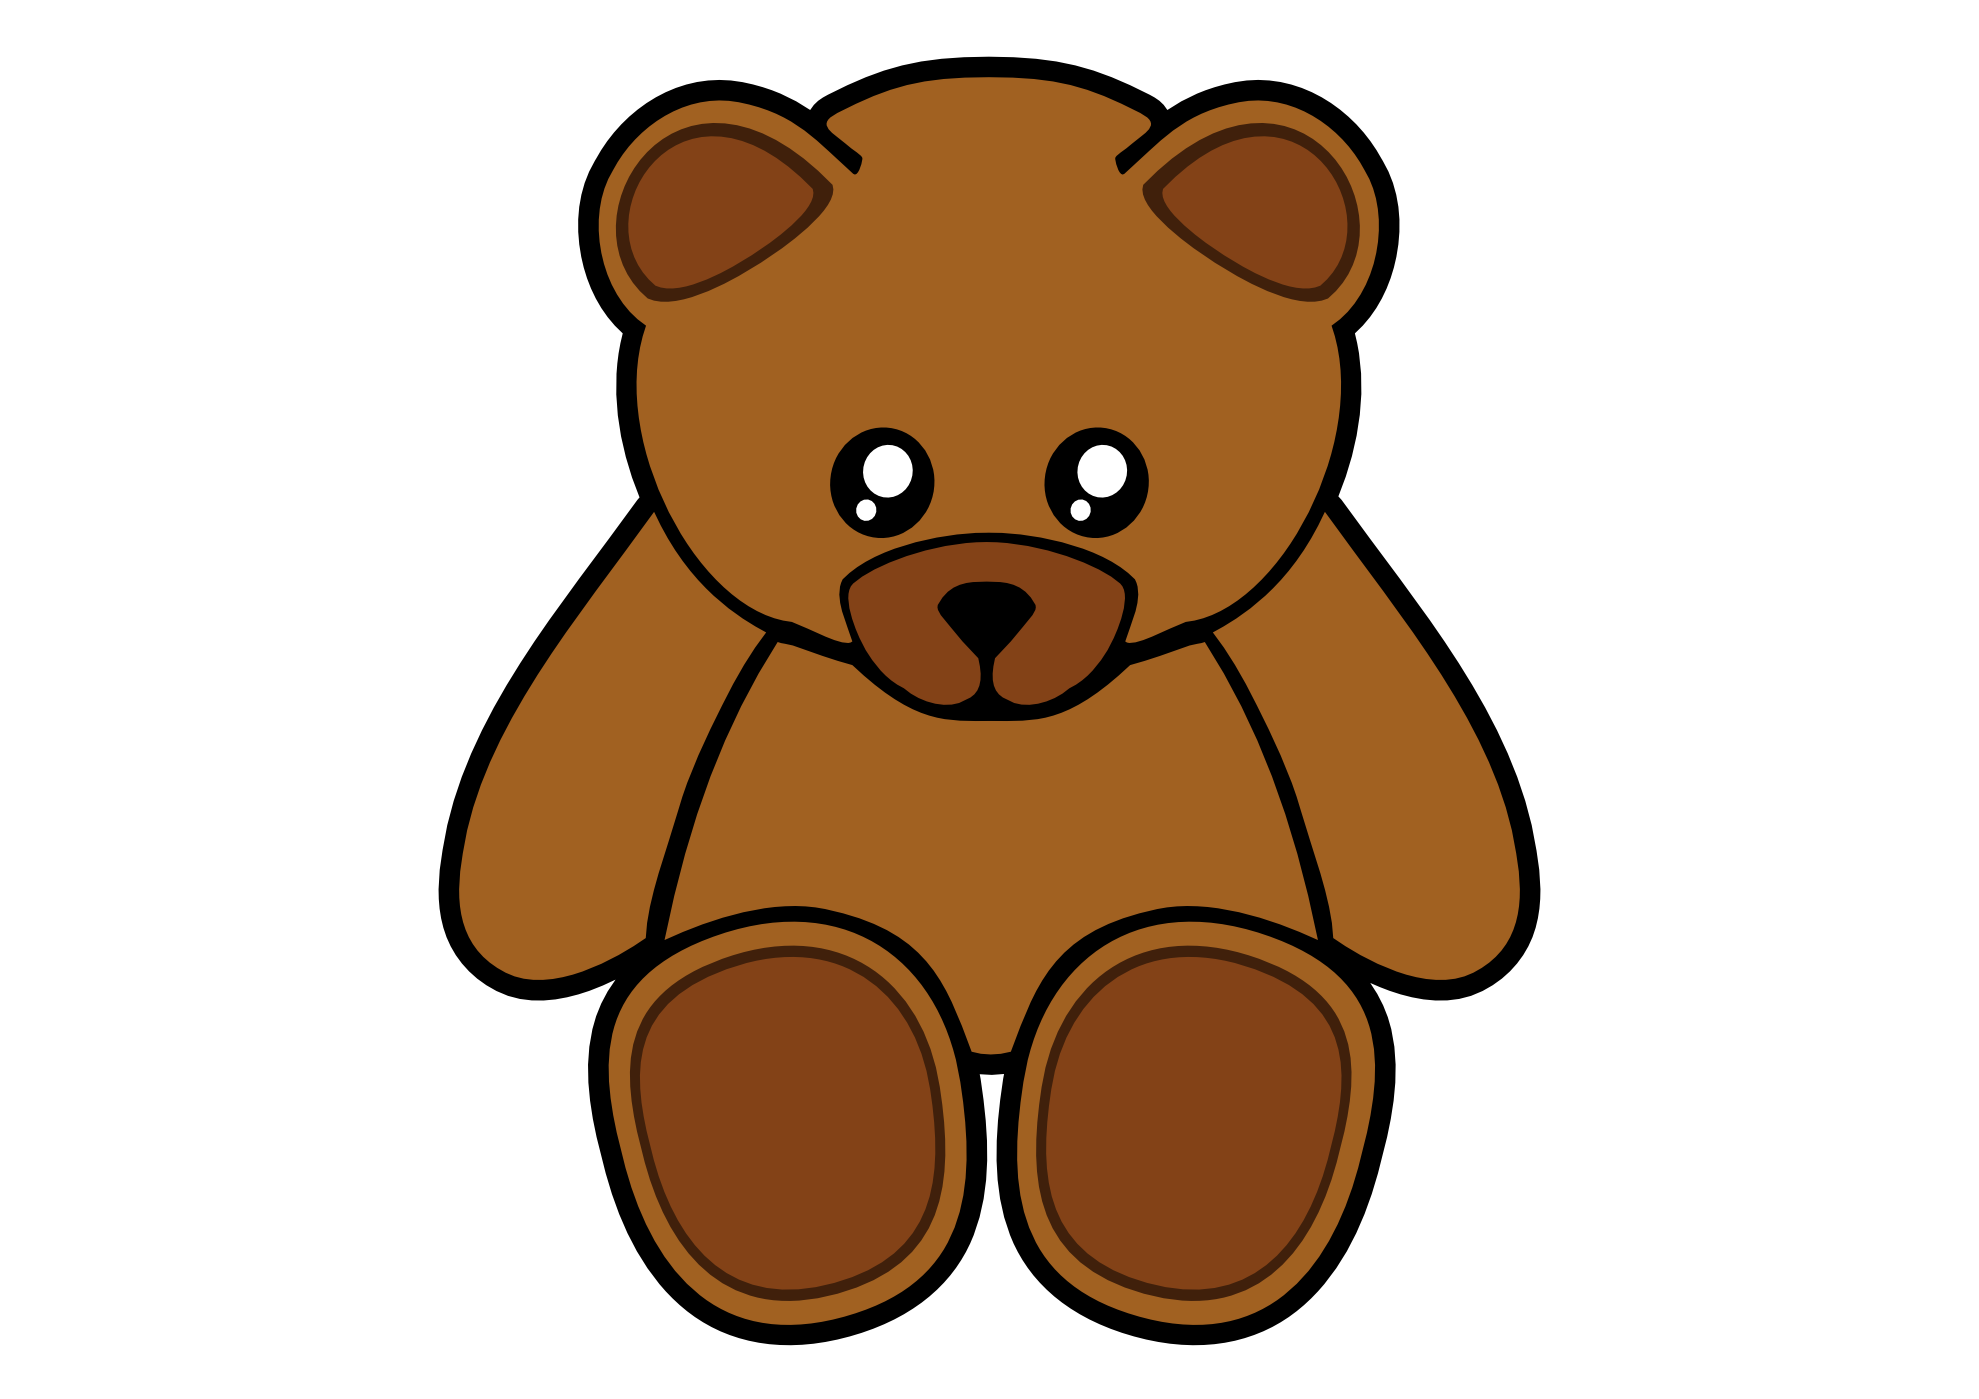 Grizzly drawing cute. Bear clipart at getdrawings